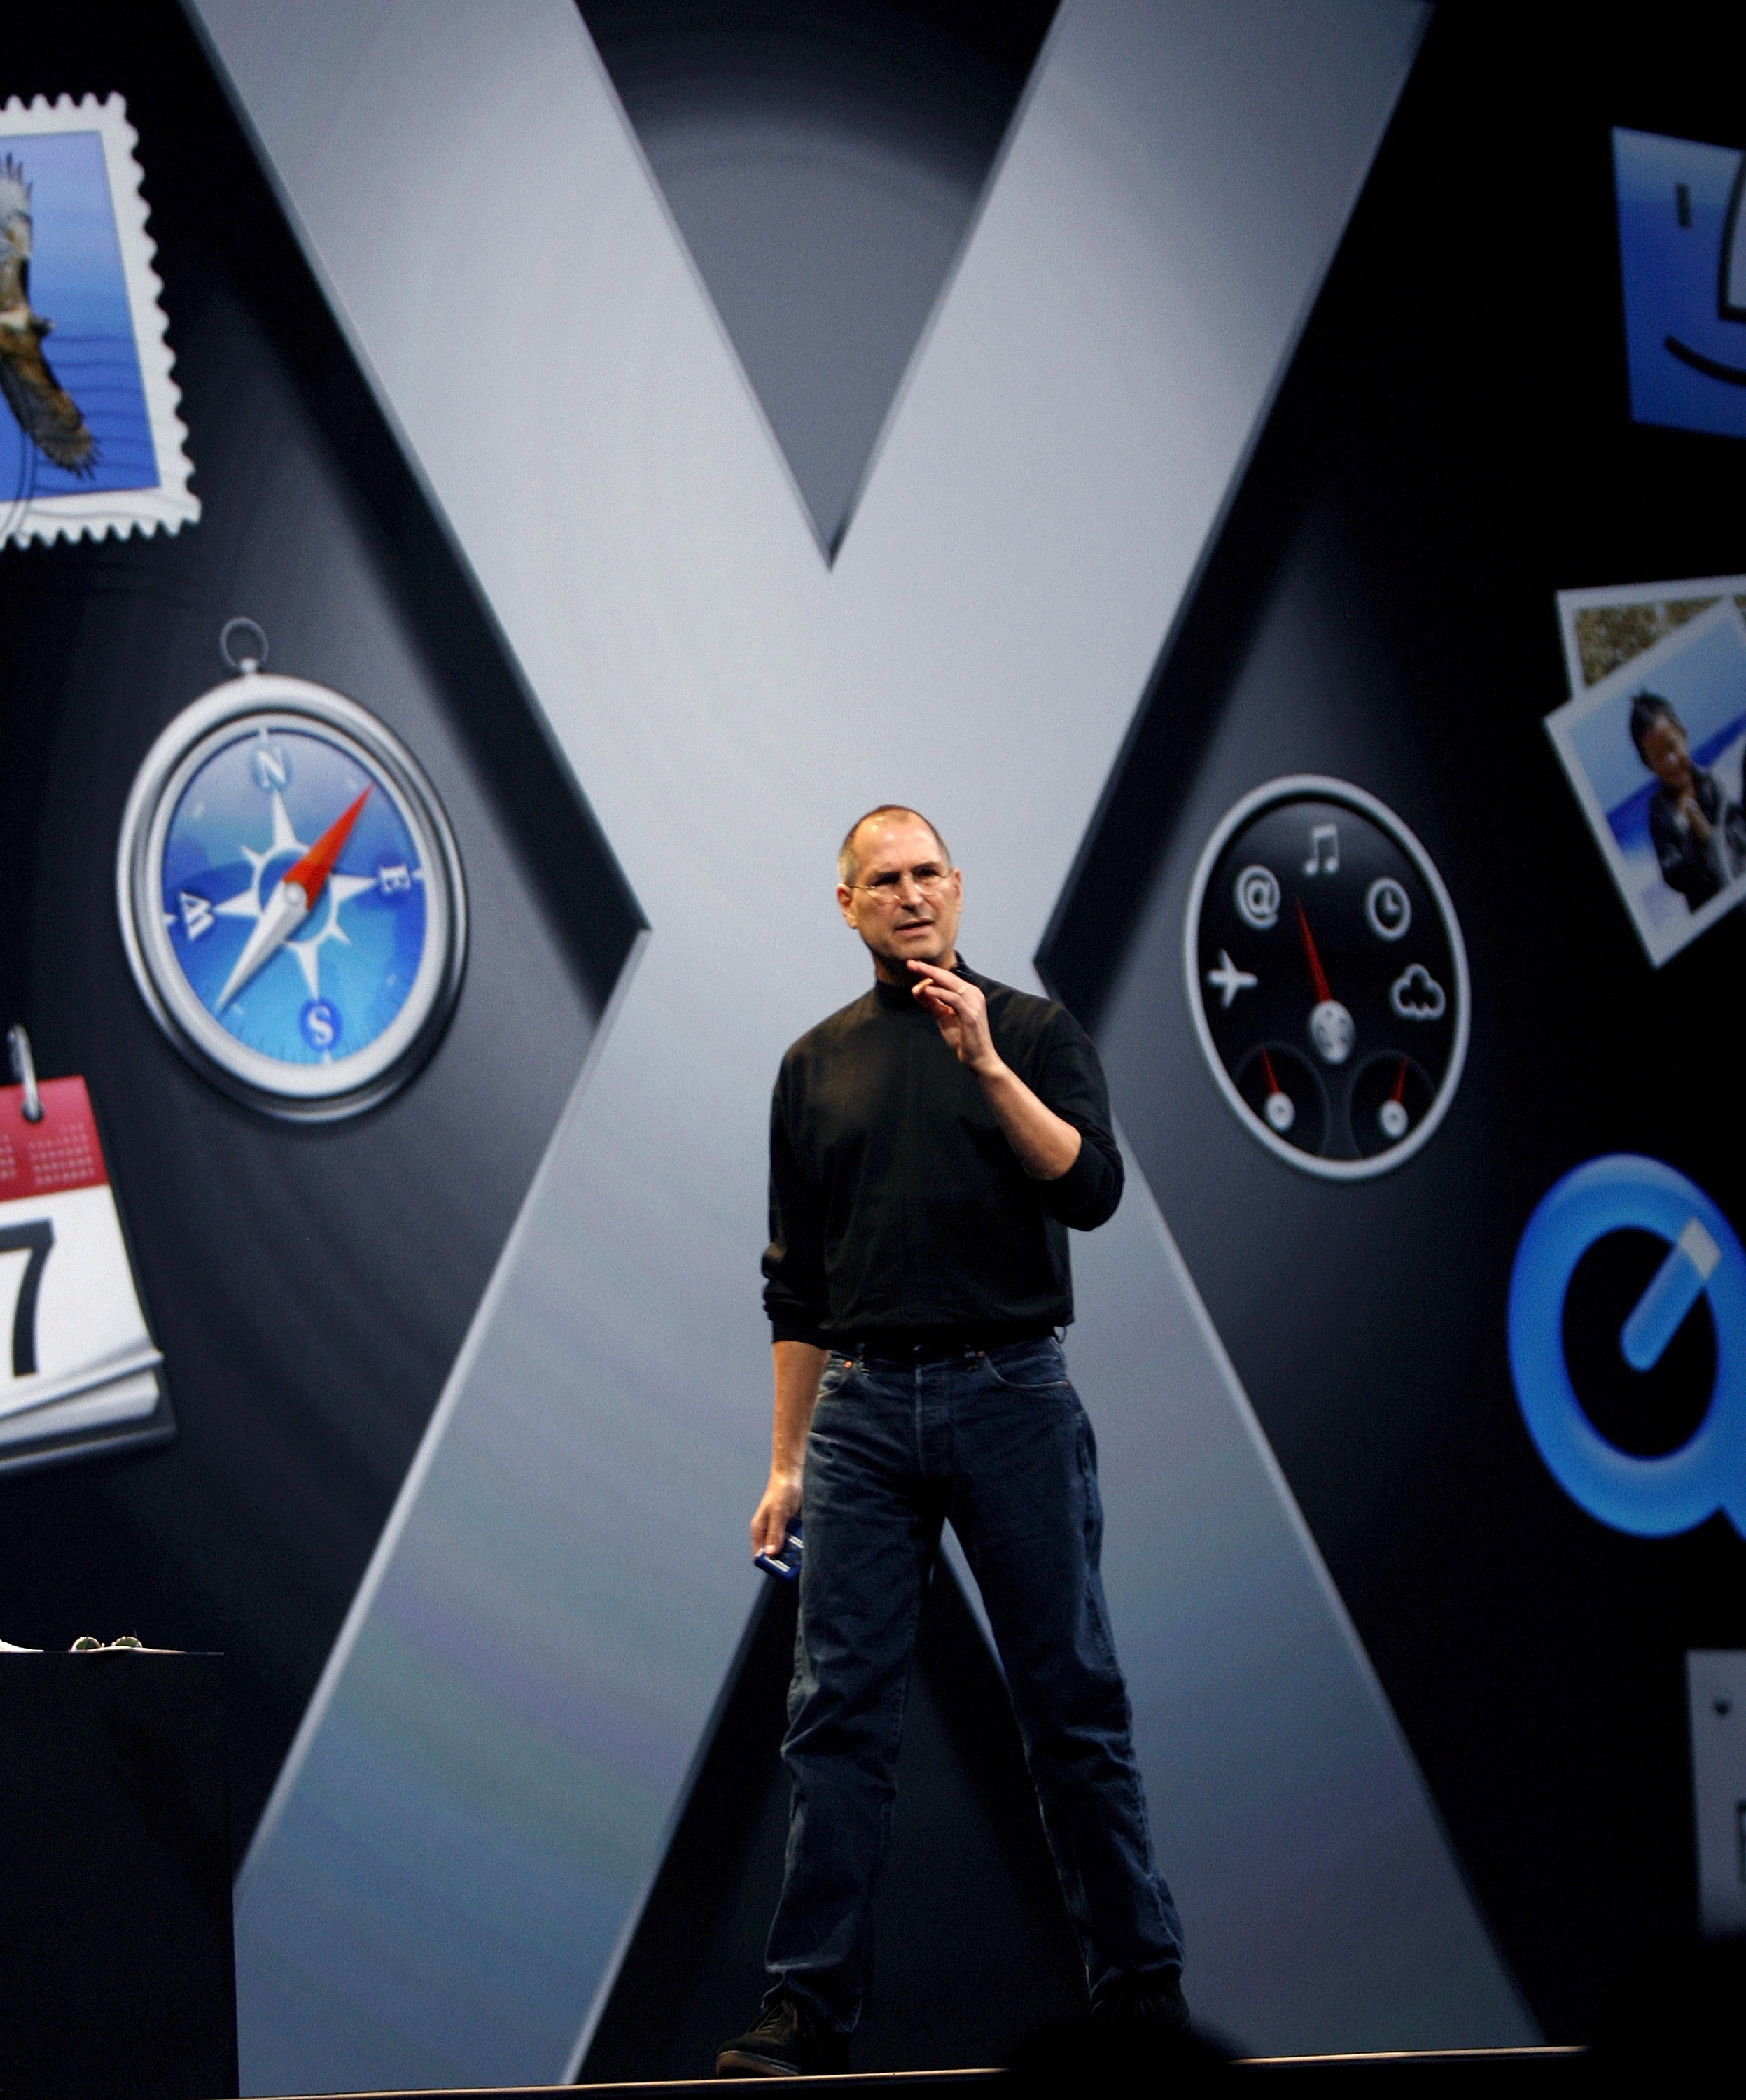 March 2001 - OS X